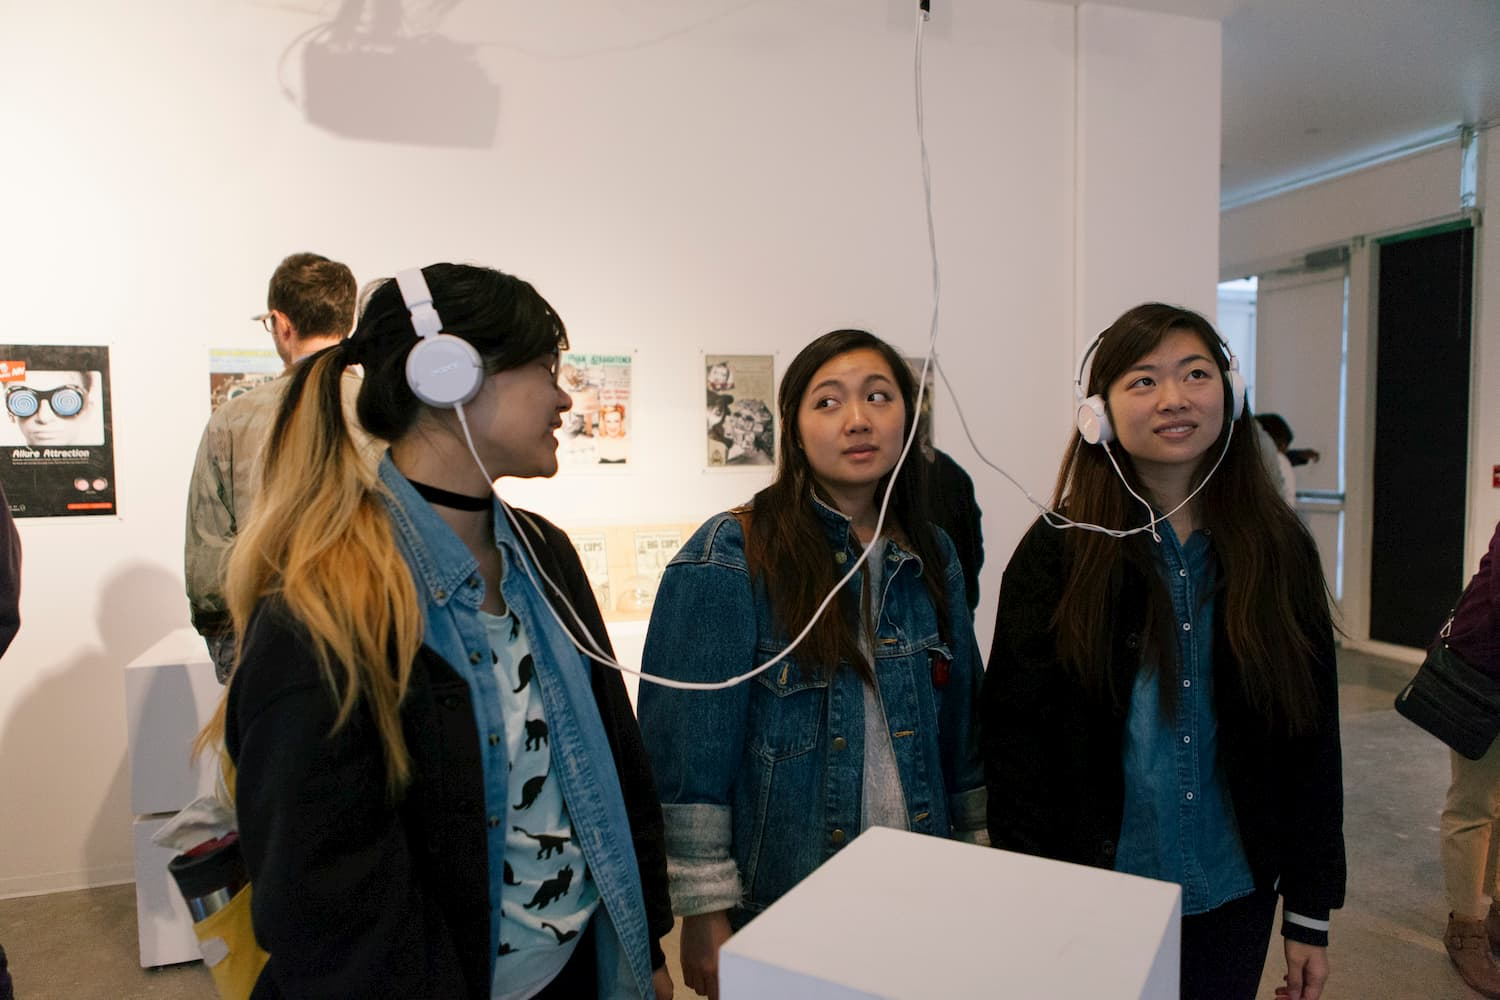 People wearing headphones looking up at a monitor pictured out of frame.